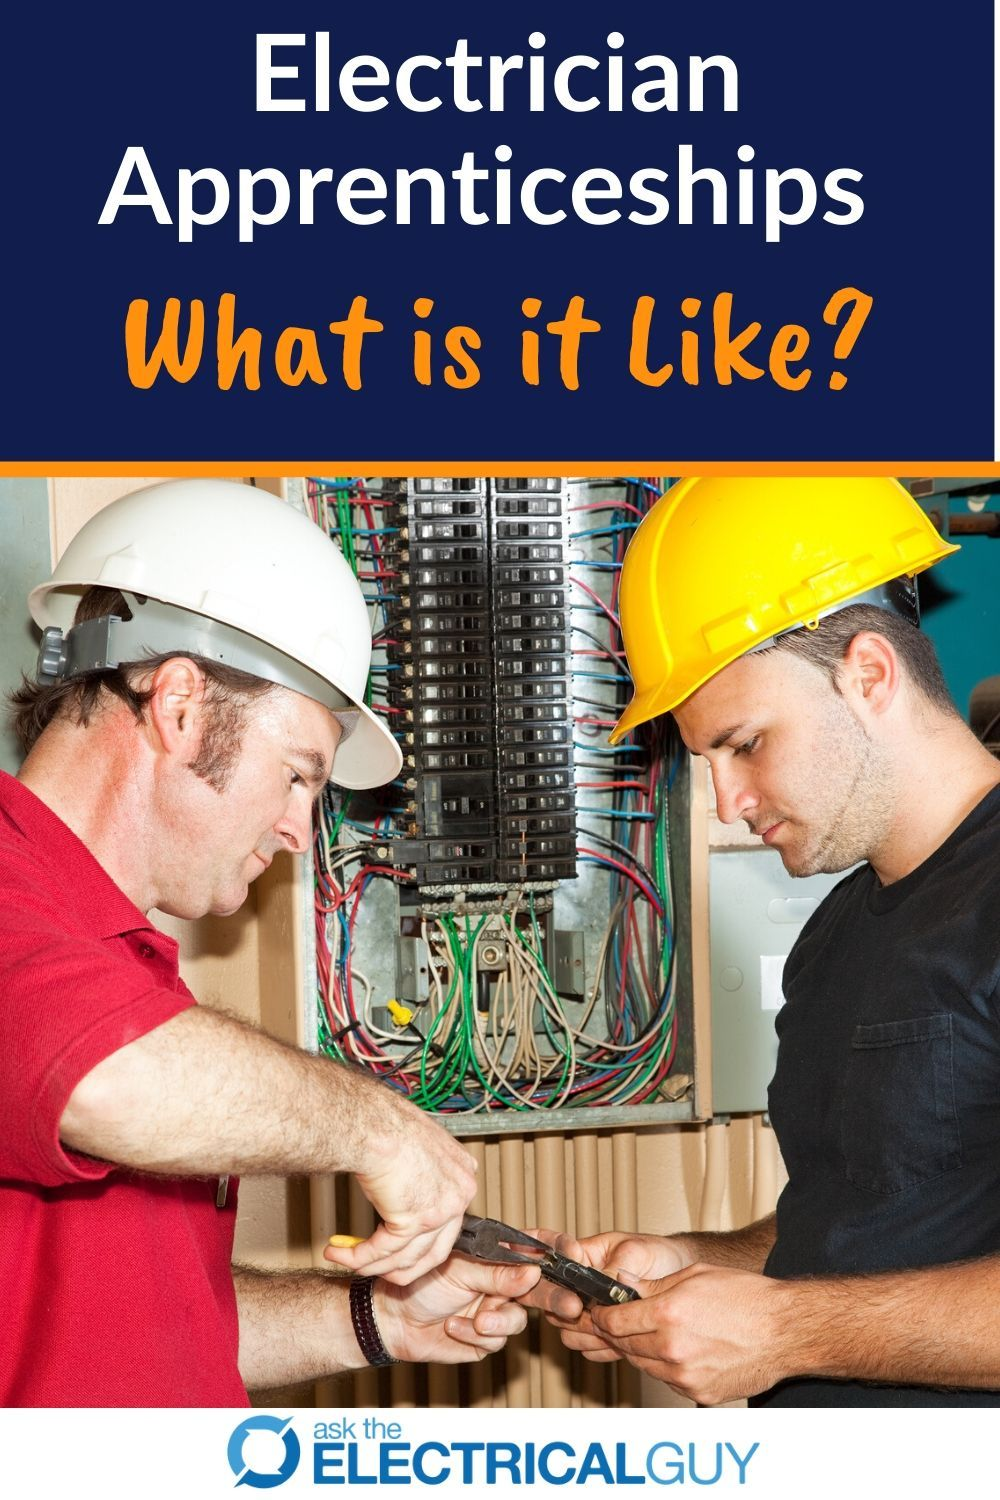 The first year as an electrician apprentice can be nerve